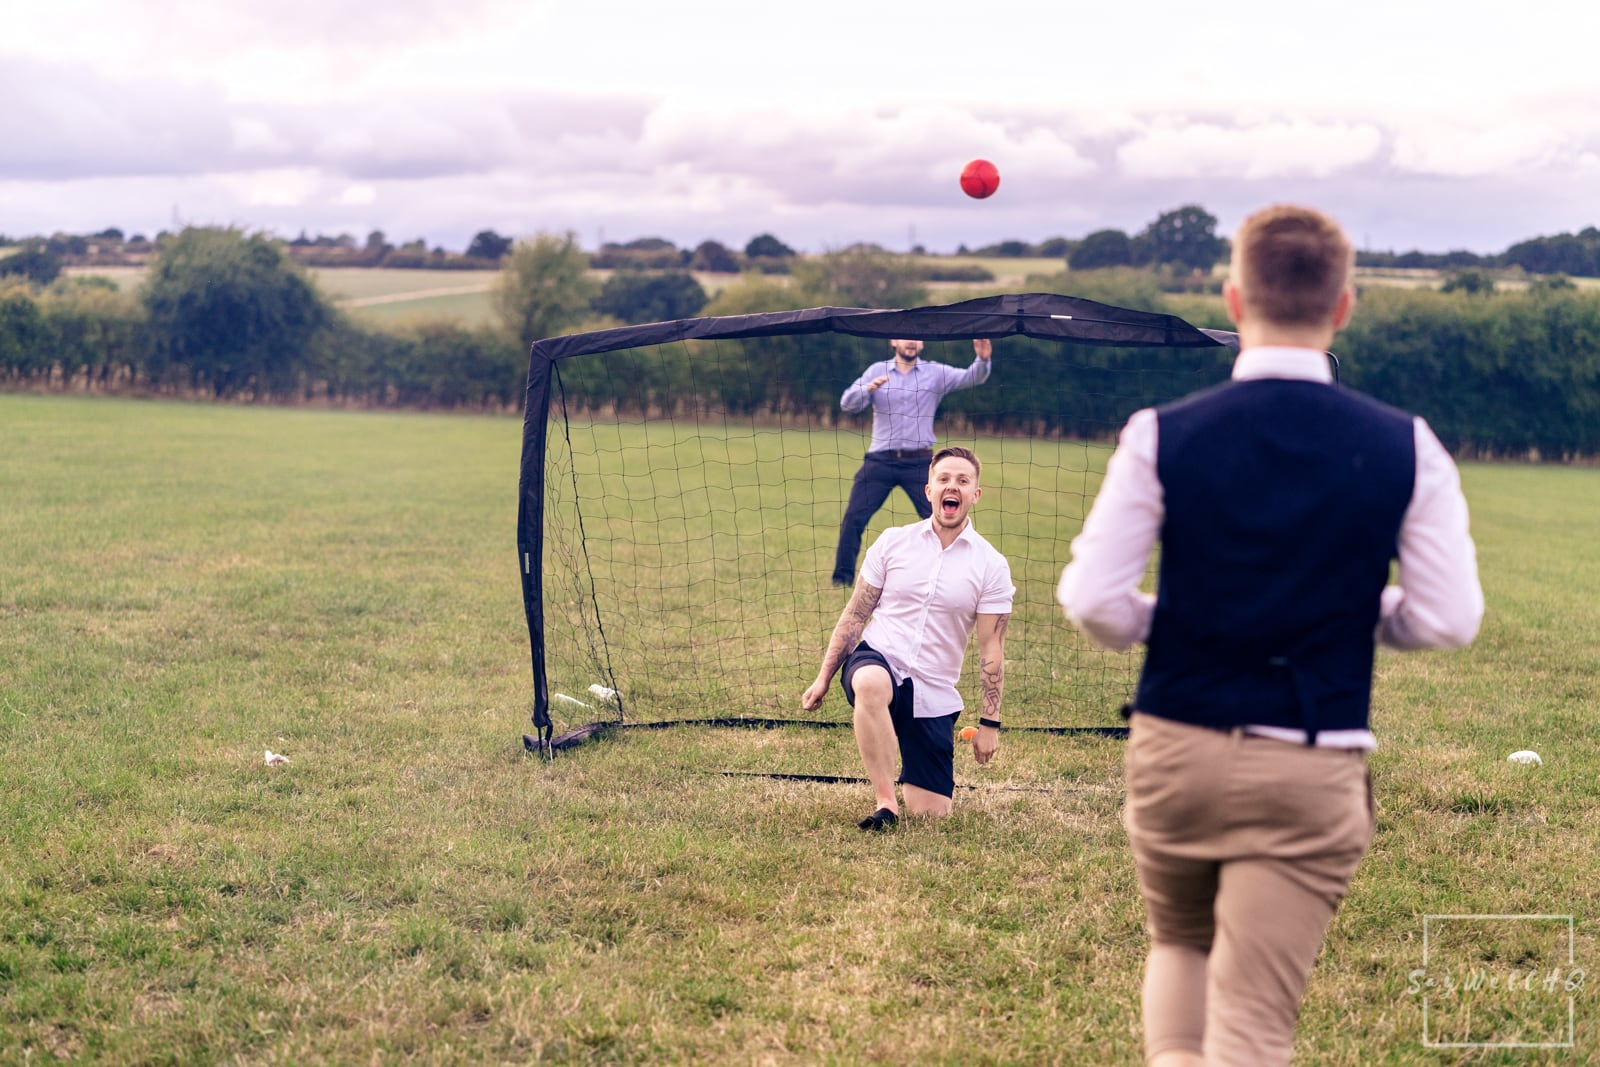 Mapperley Farm Wedding Photography + Mapperley Farm Wedding Photographer + wedding guests play summer games in the evening sunshine at a tipi wedding